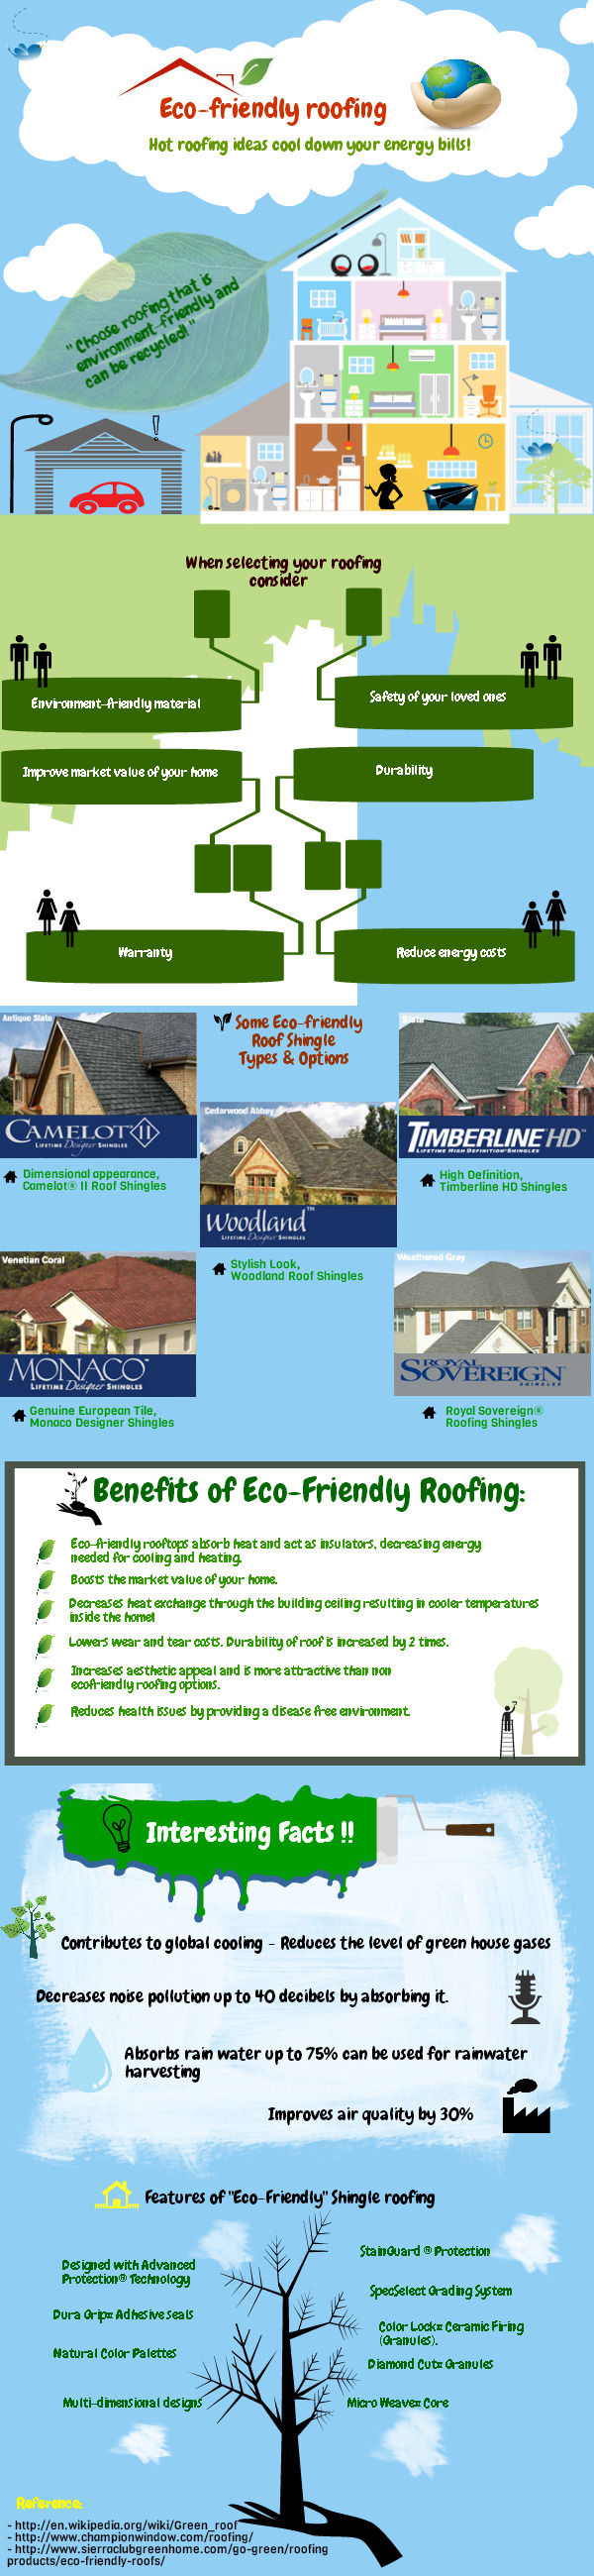 ecofriendly-roofing-infographics_525b9819f2f22